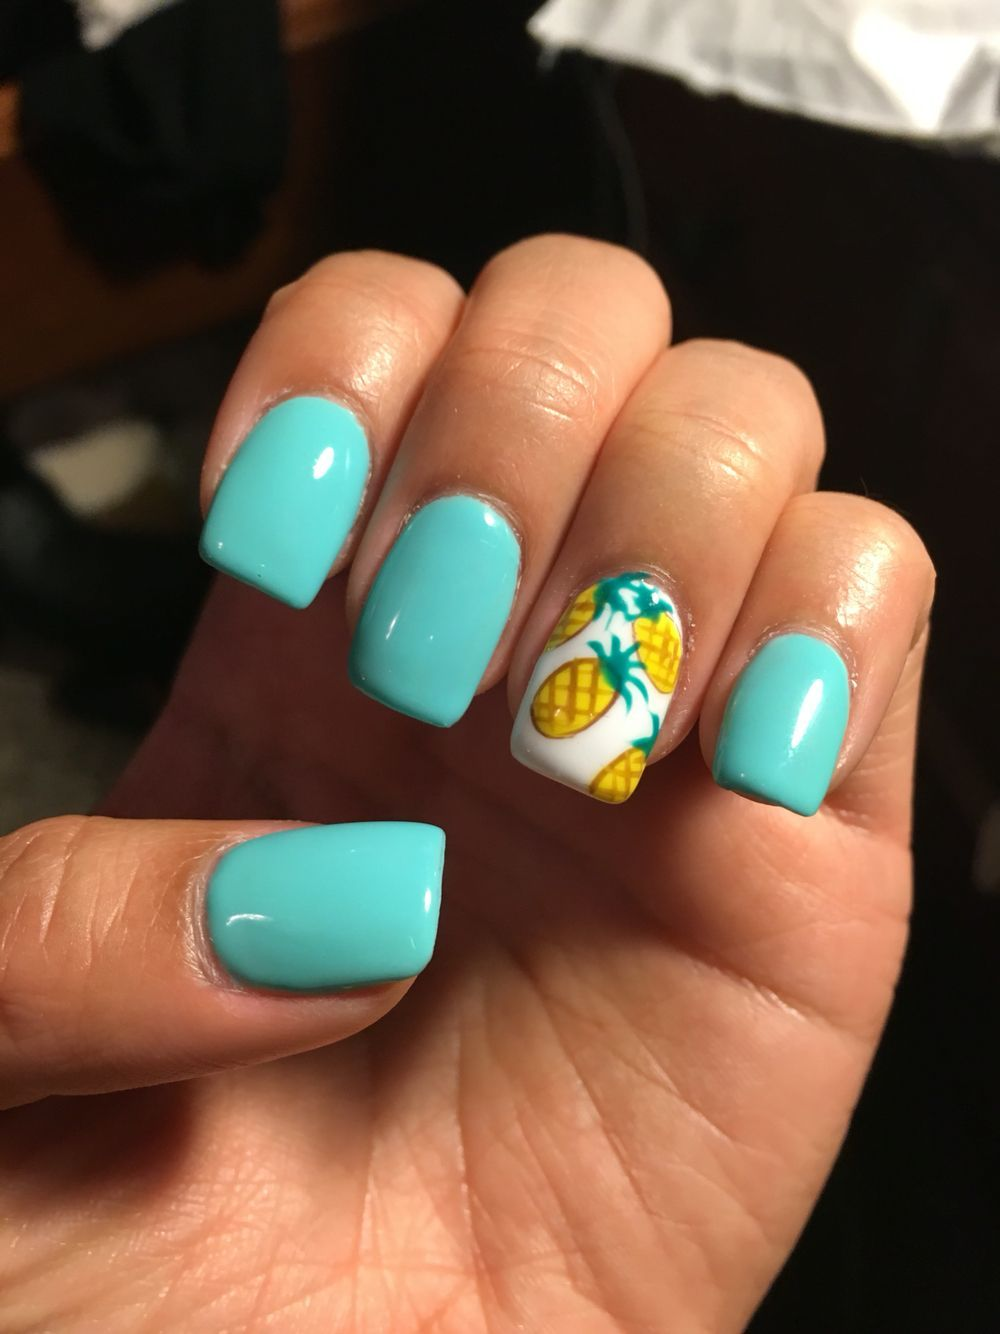 Summer Nails Teal Acrylics With Pineapples